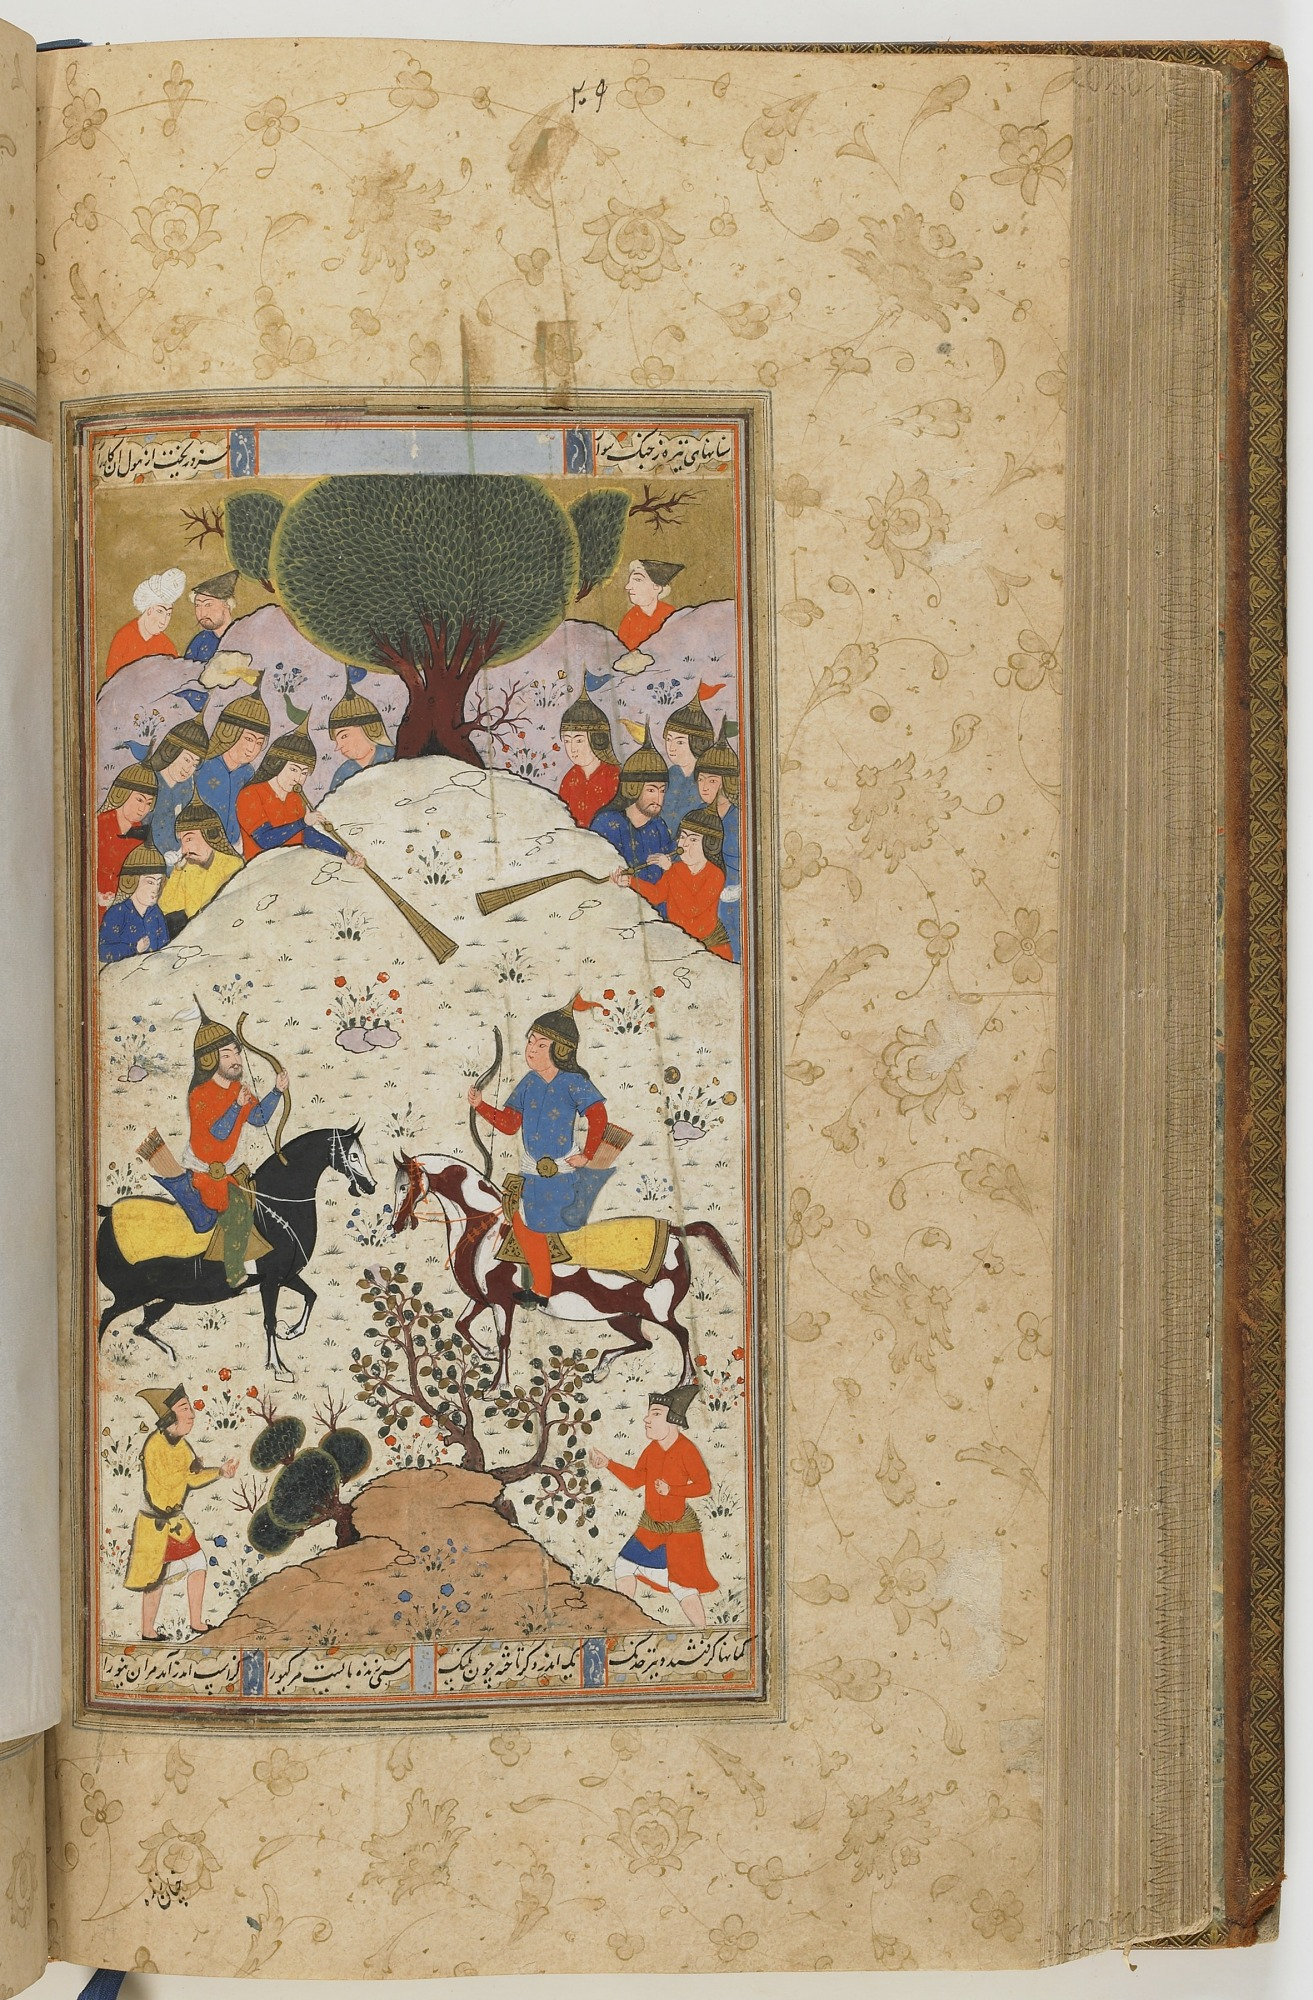 folio 210 verso: The Shahnama (Book of kings) by Firdausi (d. 1020)